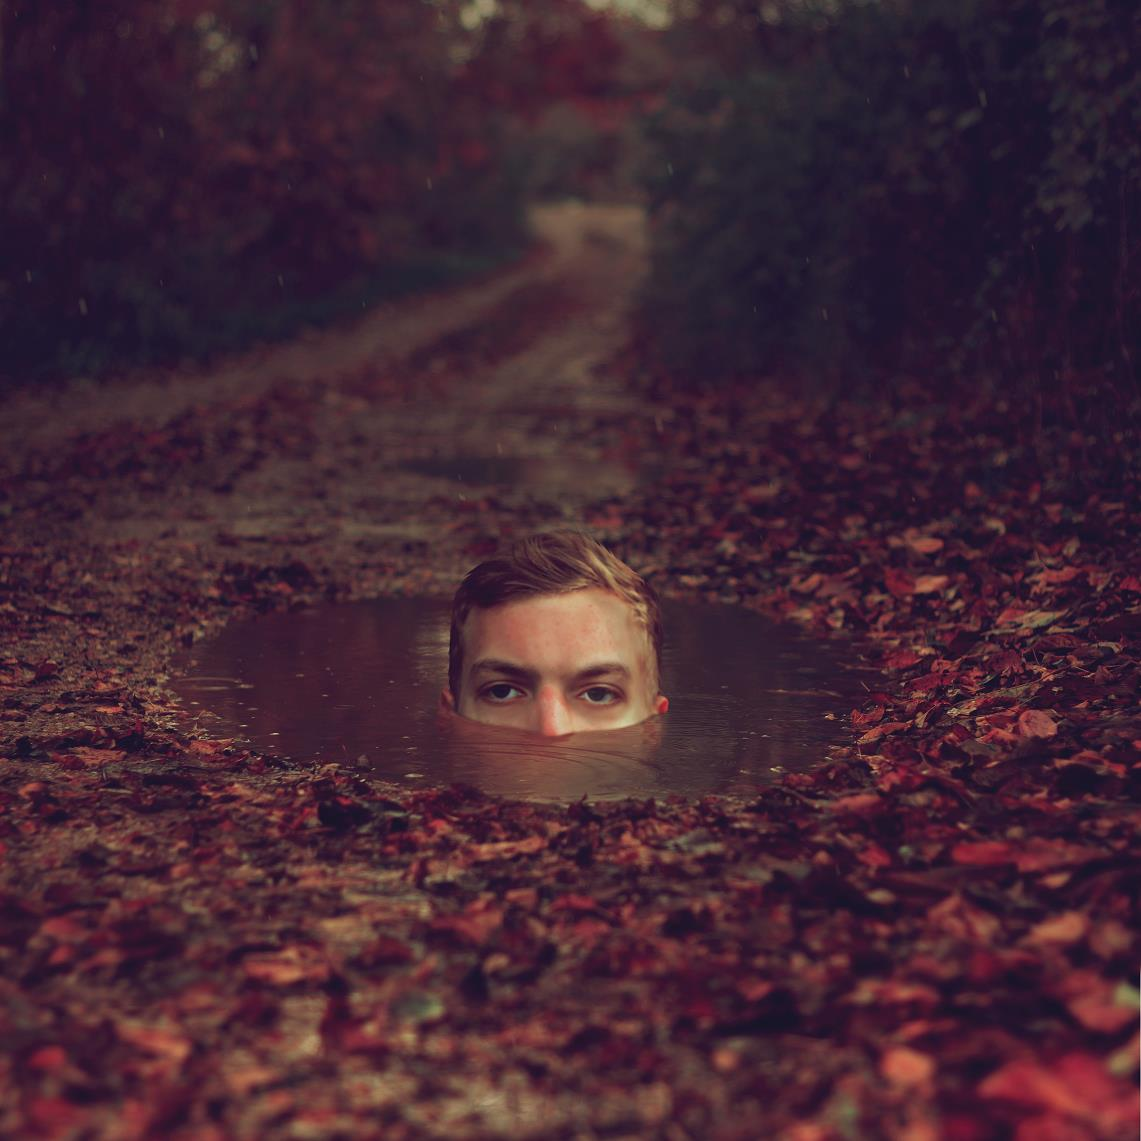 Kyle Thompson Photography – man water – Creative photography